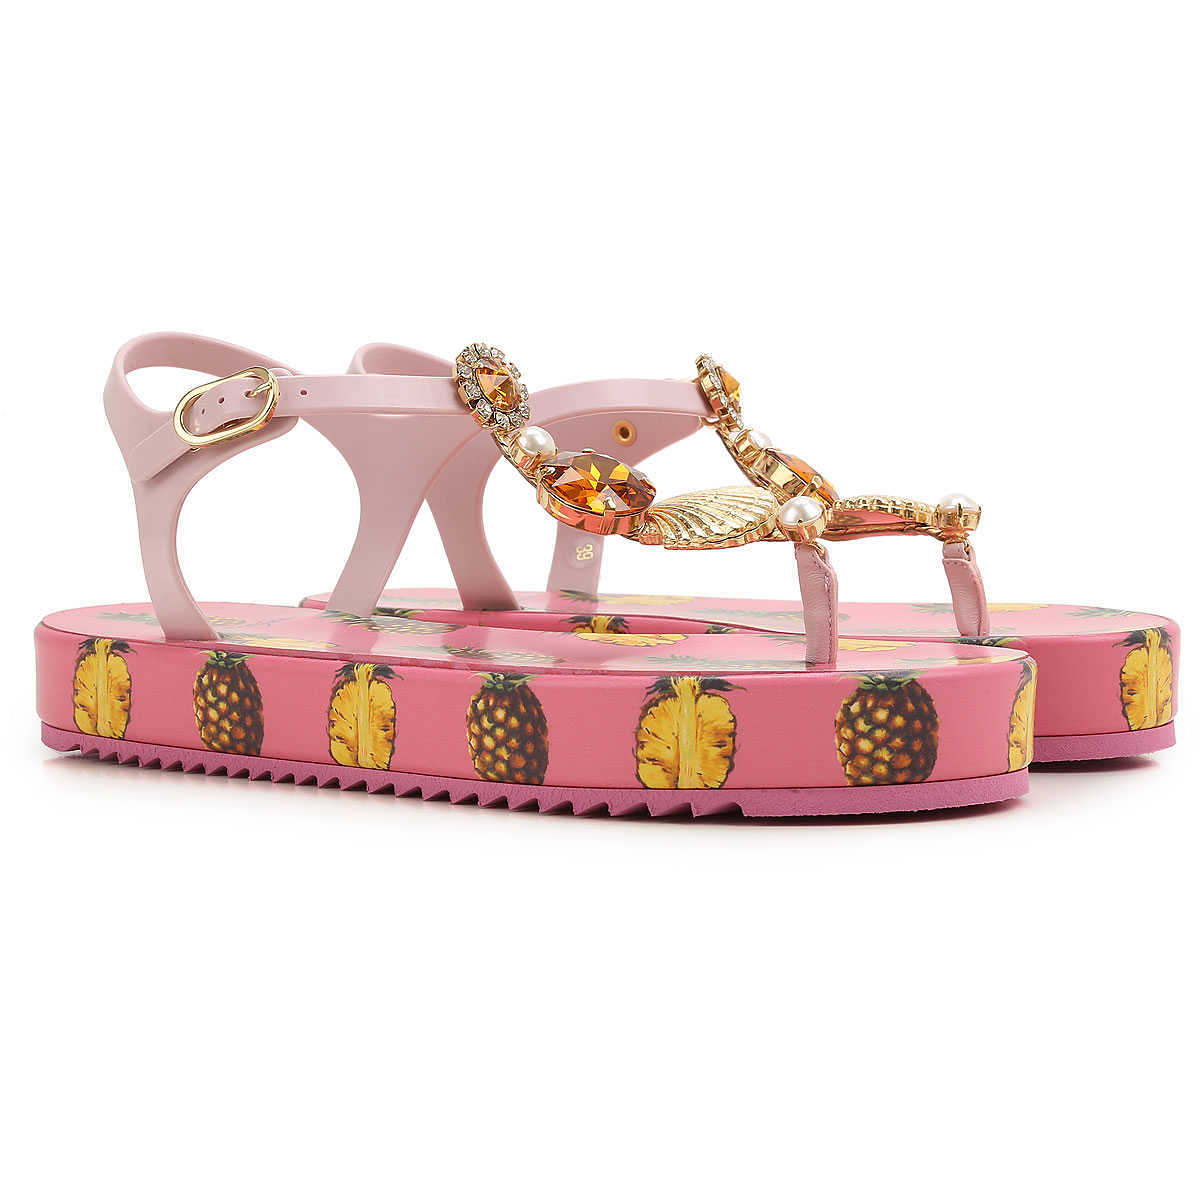 Dolce & Gabbana Sandals for Women On Sale in Outlet Ananas - GOOFASH